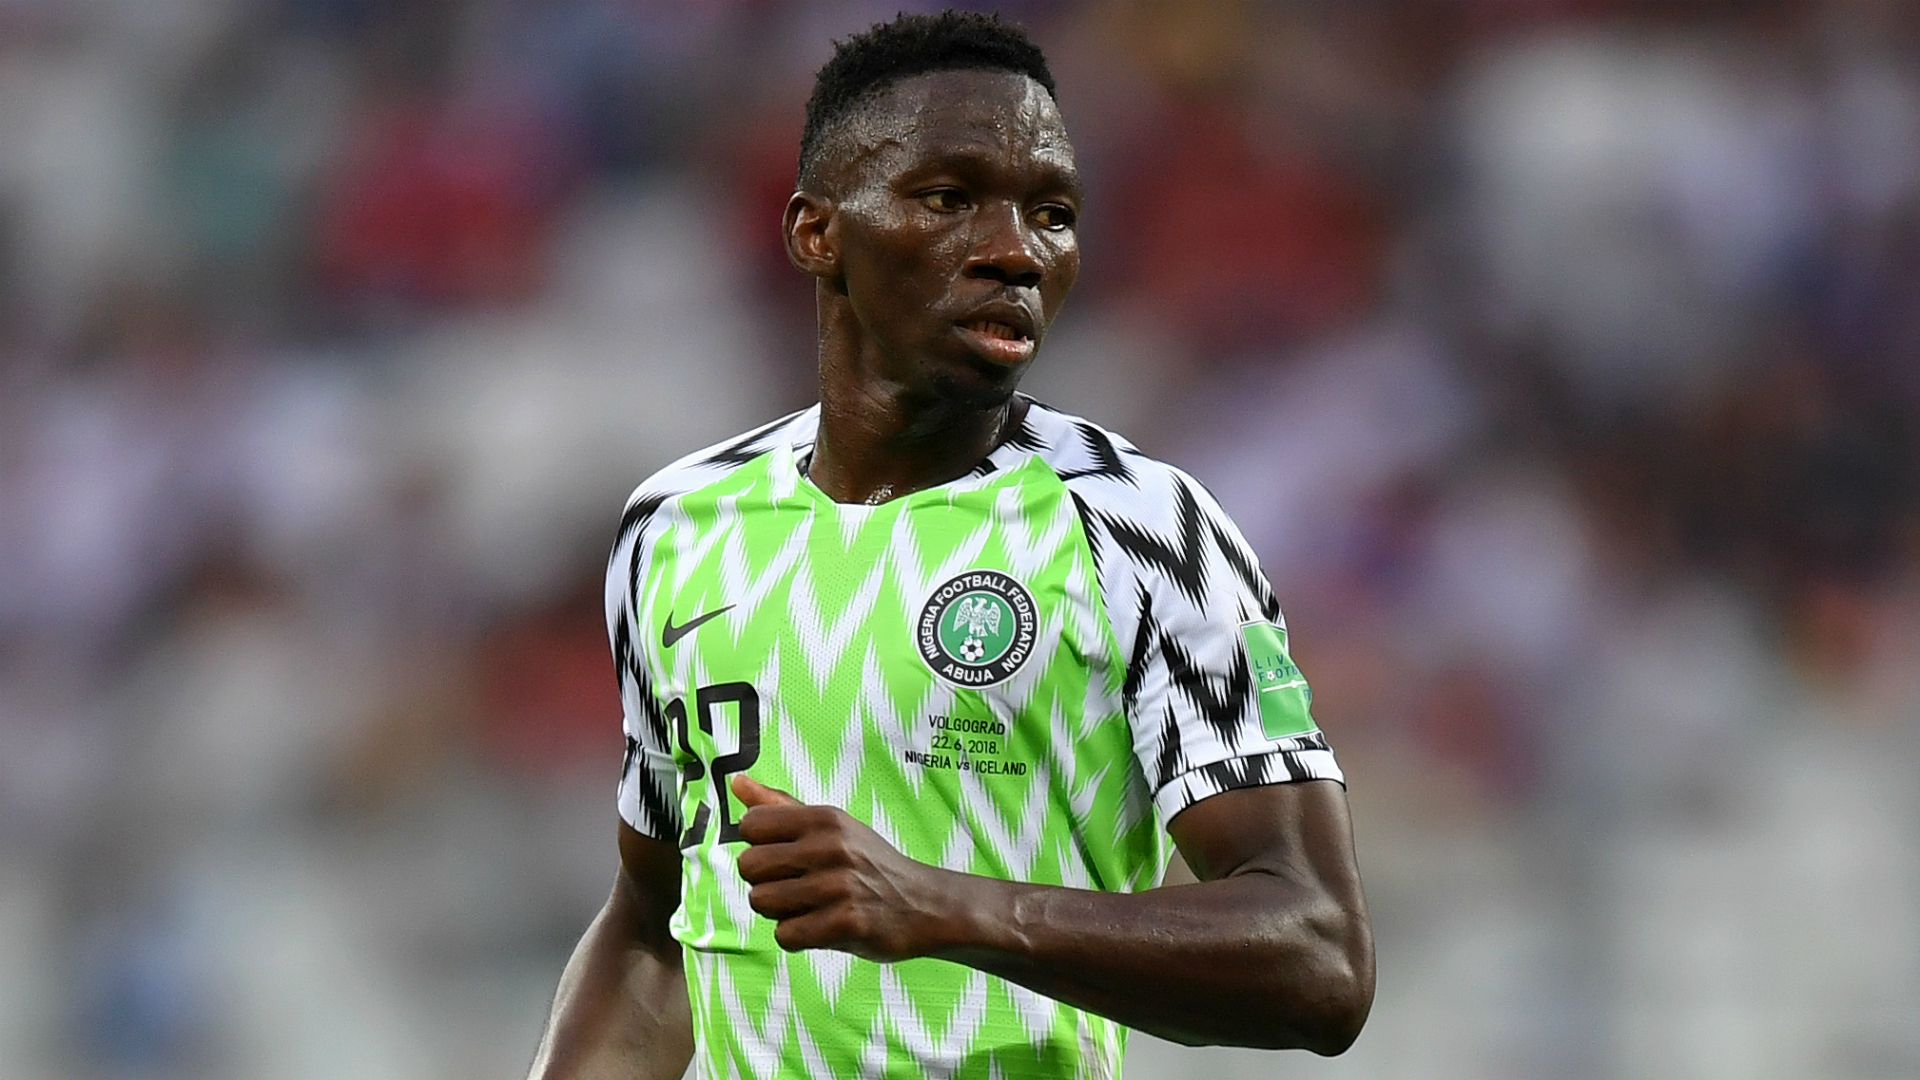 Having spent last season on loan with Leganes, Kenneth Omeruo has agreed a permanent transfer to the Spanish club from Chelsea.